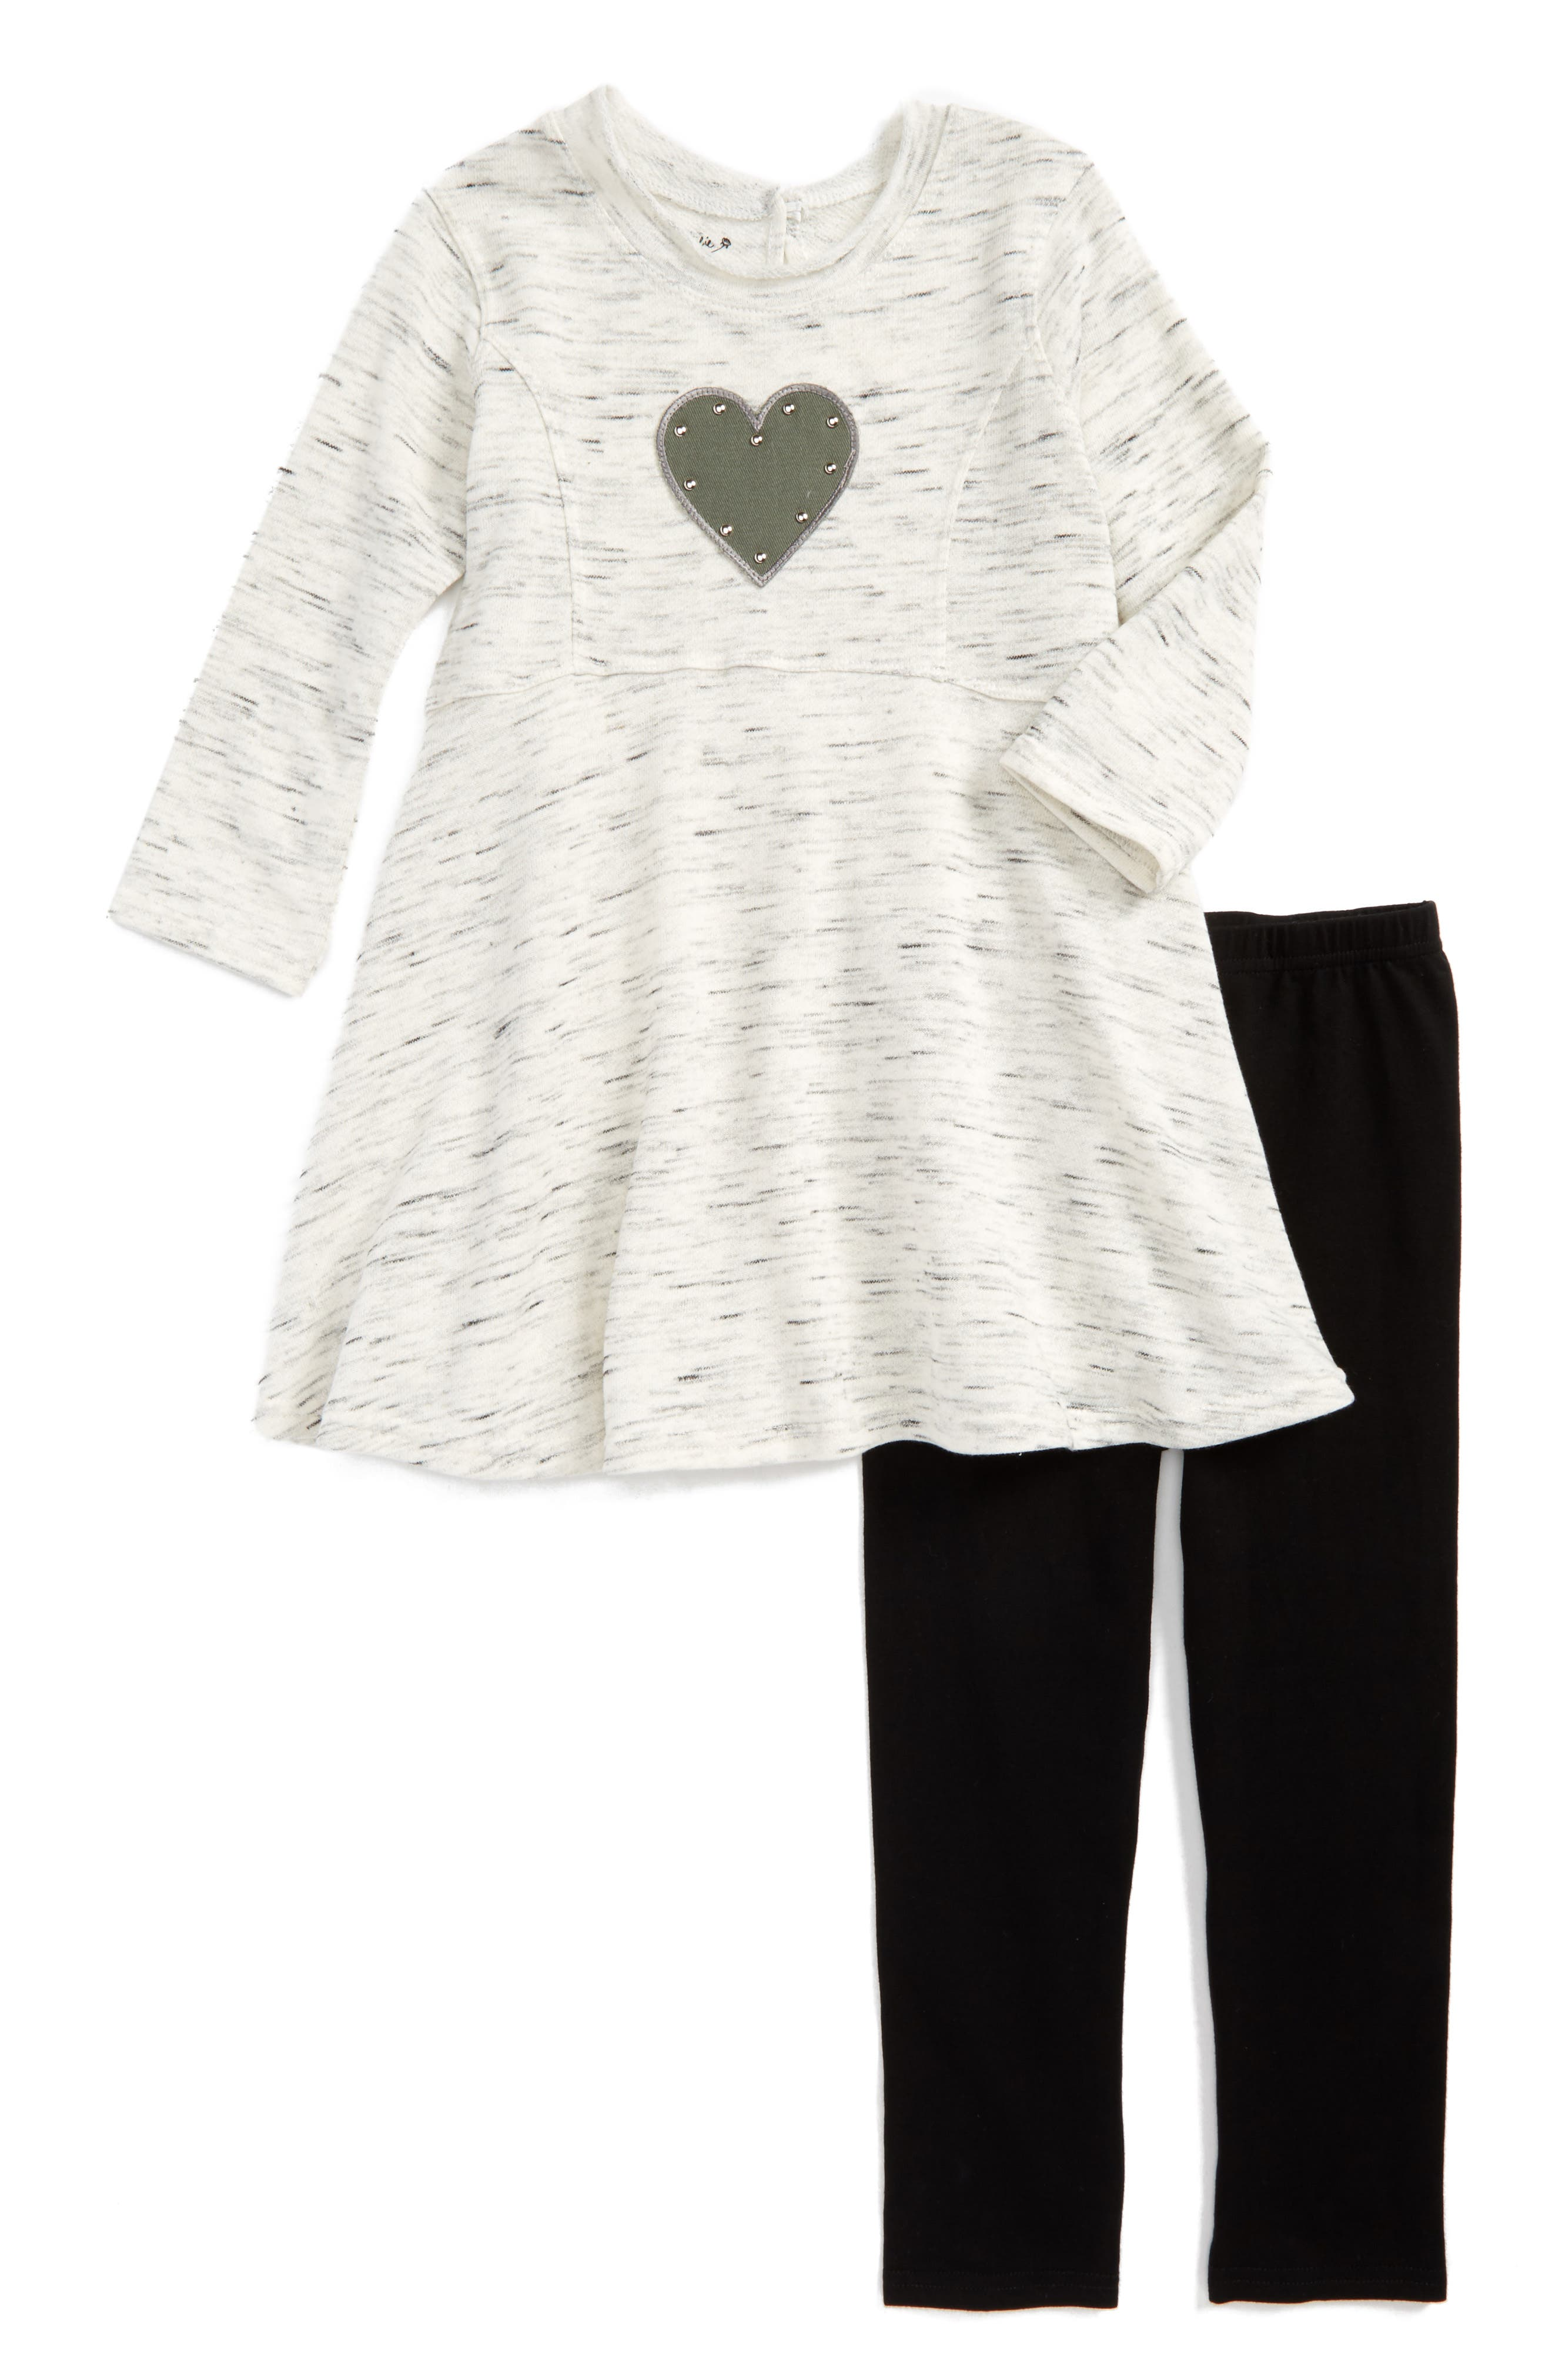 Alternate Image 1 Selected - Pippa & Julie Studded Heart Dress & Leggings (Baby Girls & Toddler Girls)